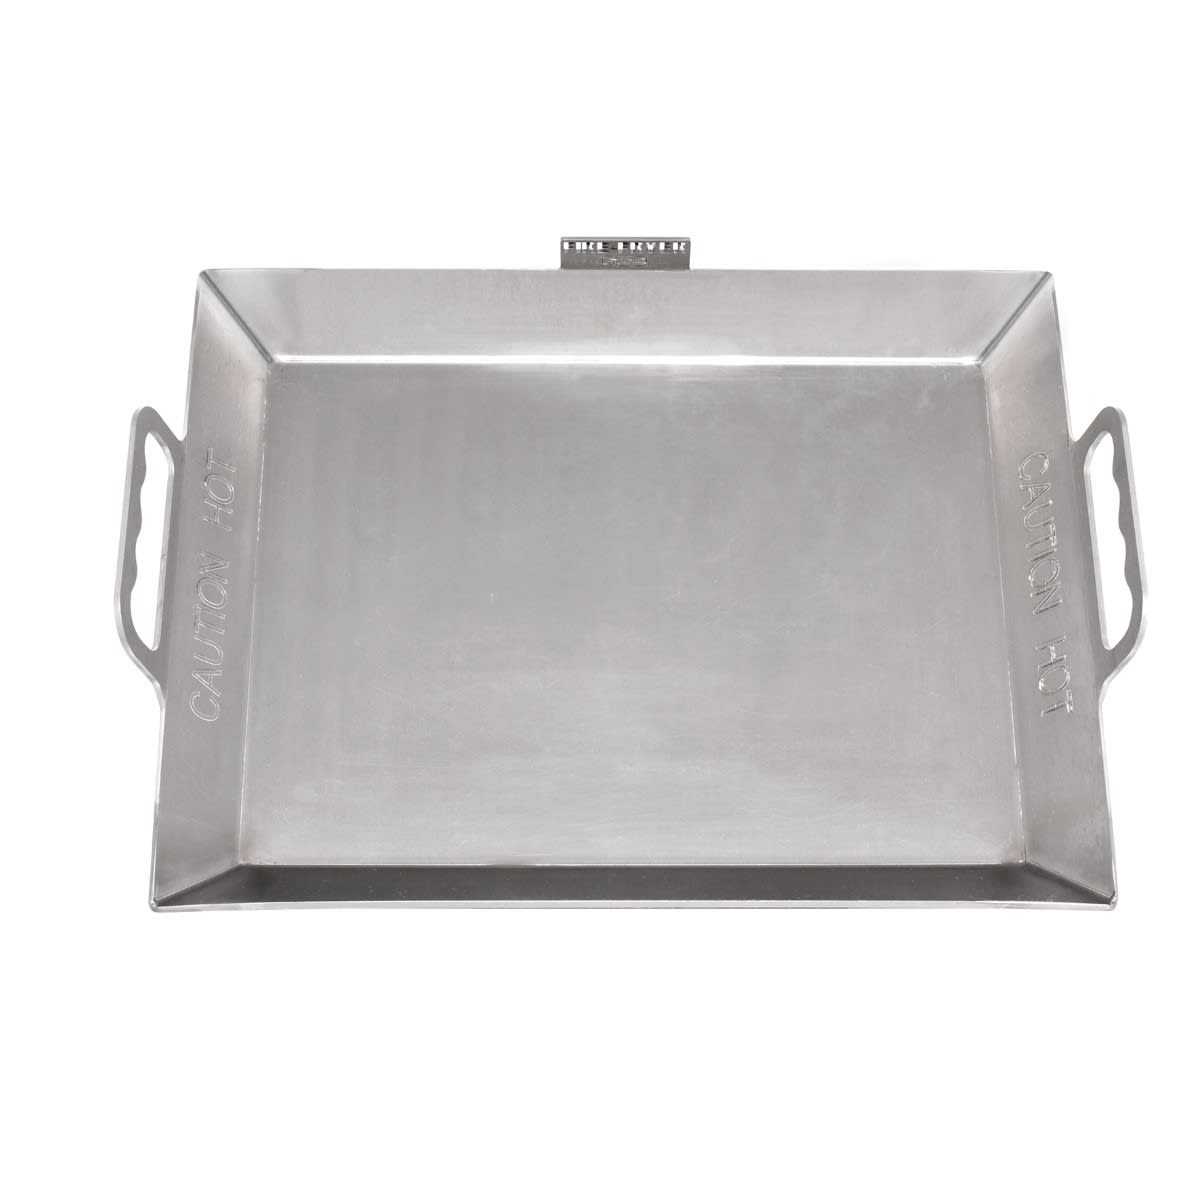 Stainless Steel Fire Fryer Braai Pan